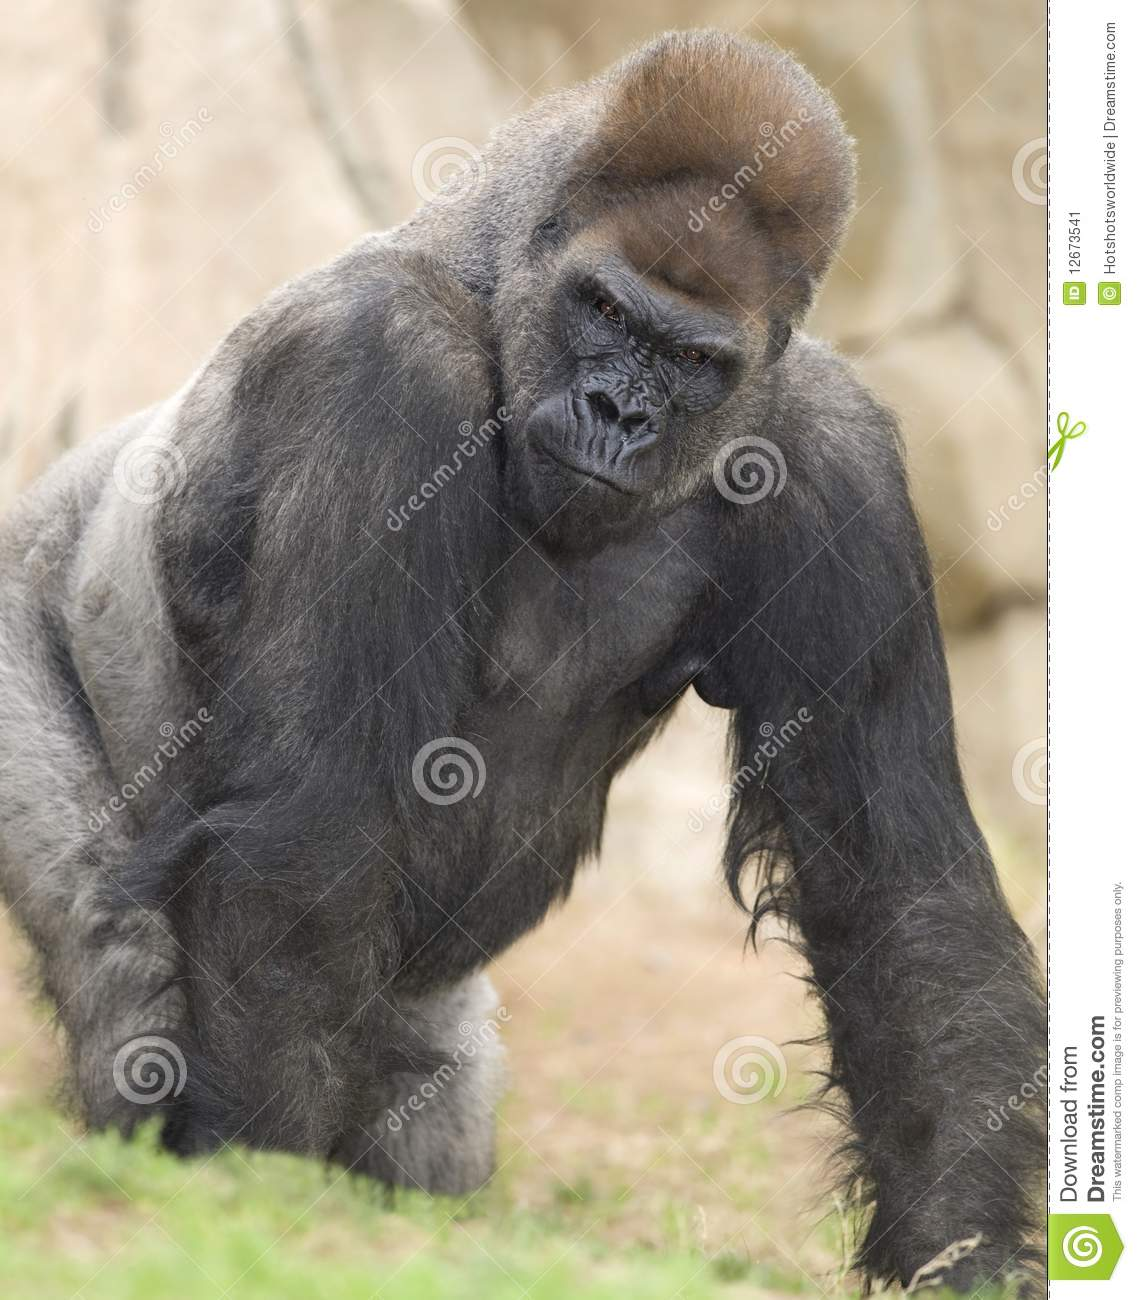 African silverback gorilla - photo#20